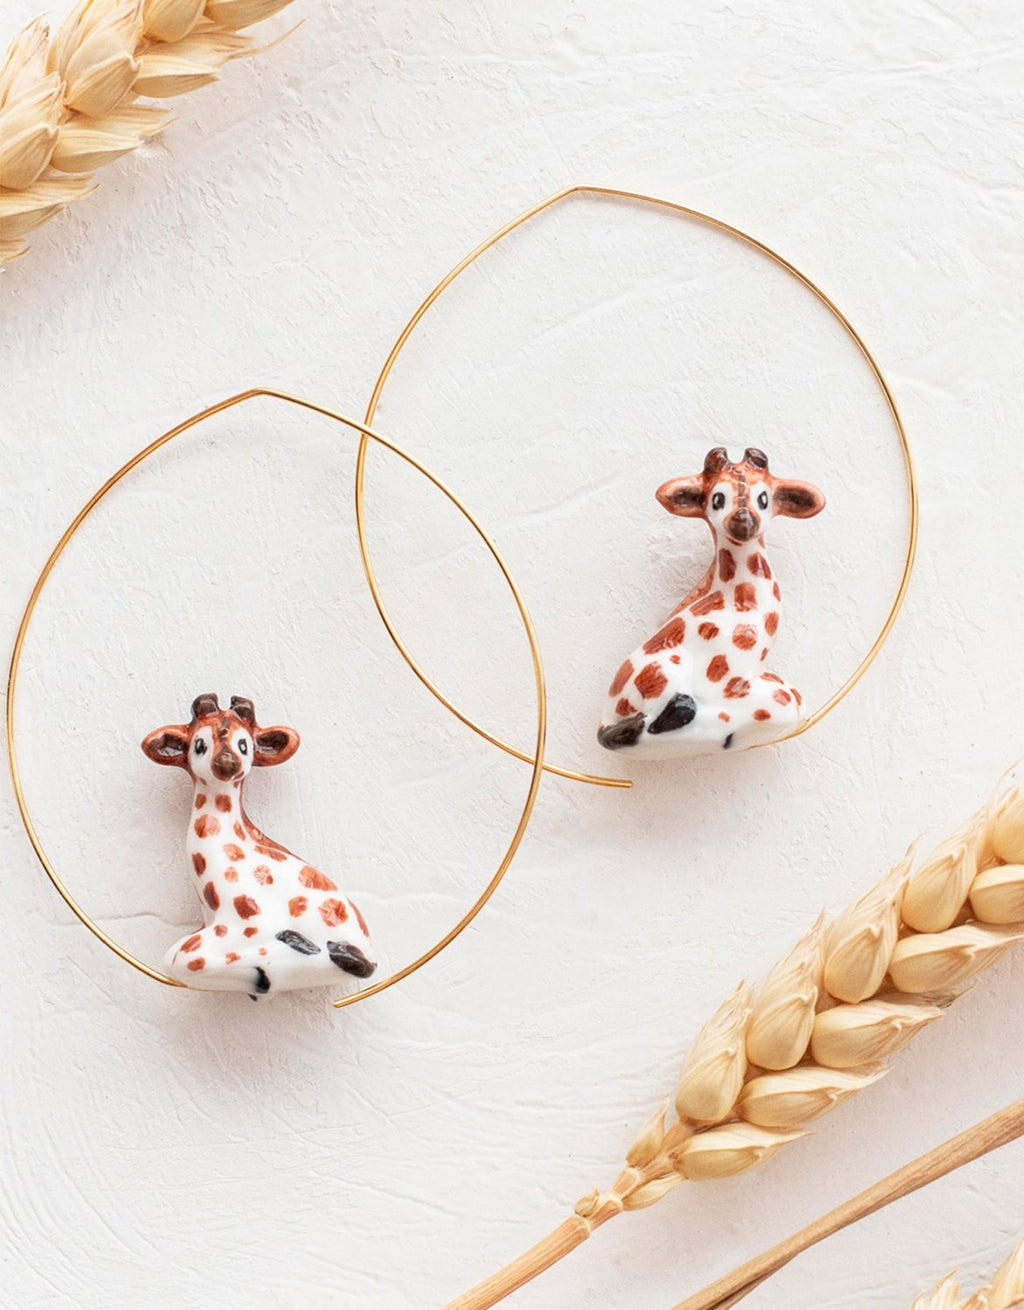 Girrafe hoops earrings made from porcelain nach bijoux